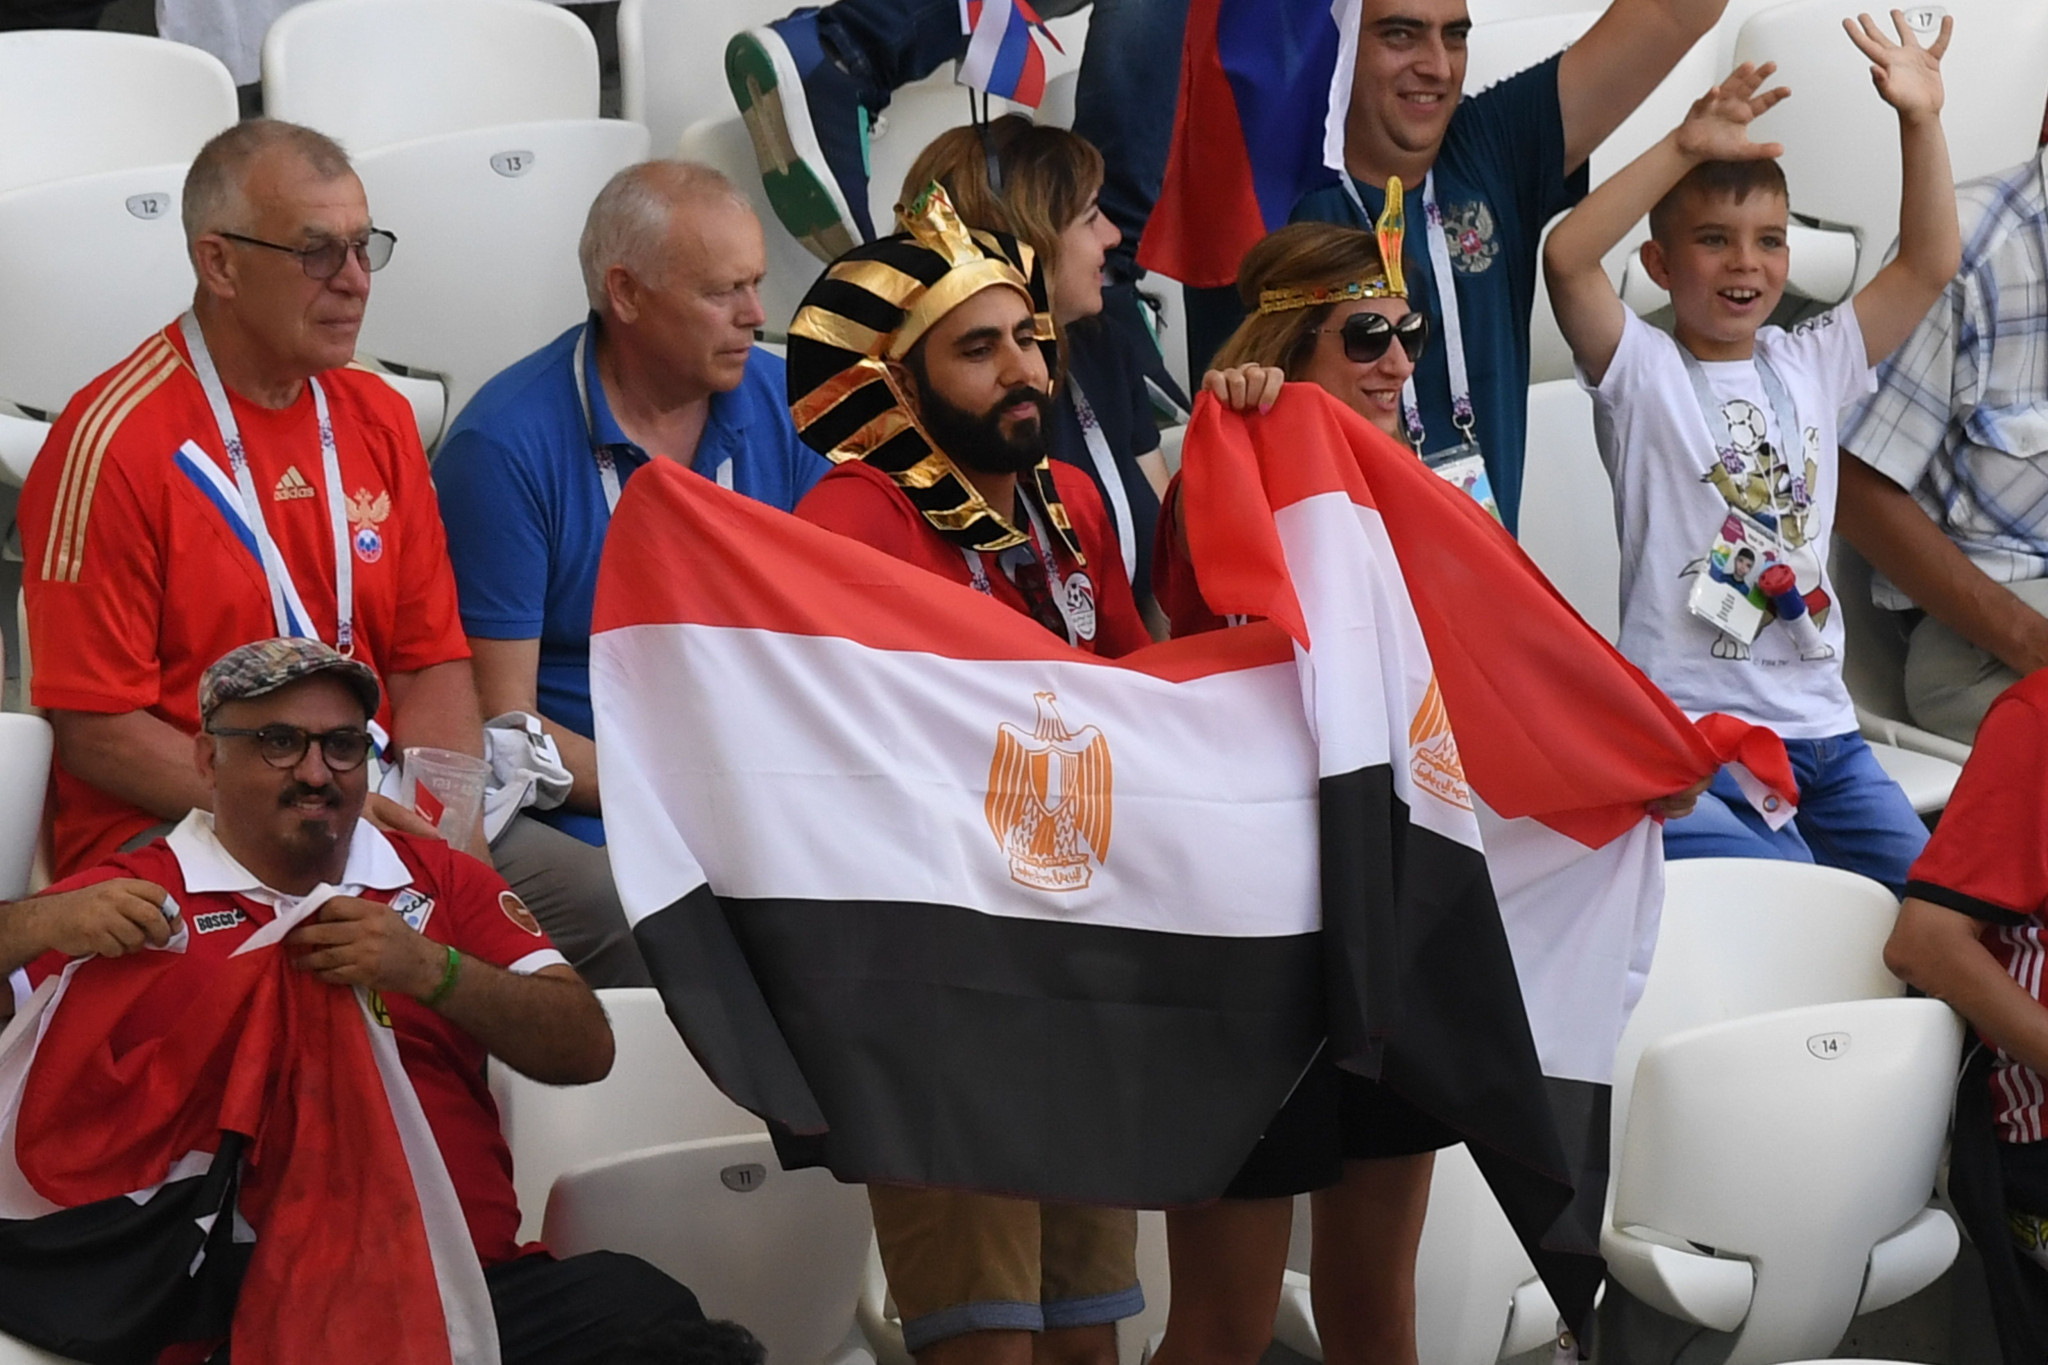 Egypt could now host the 2019 tournament after not wanting to bid against another Arab country ©Getty Images